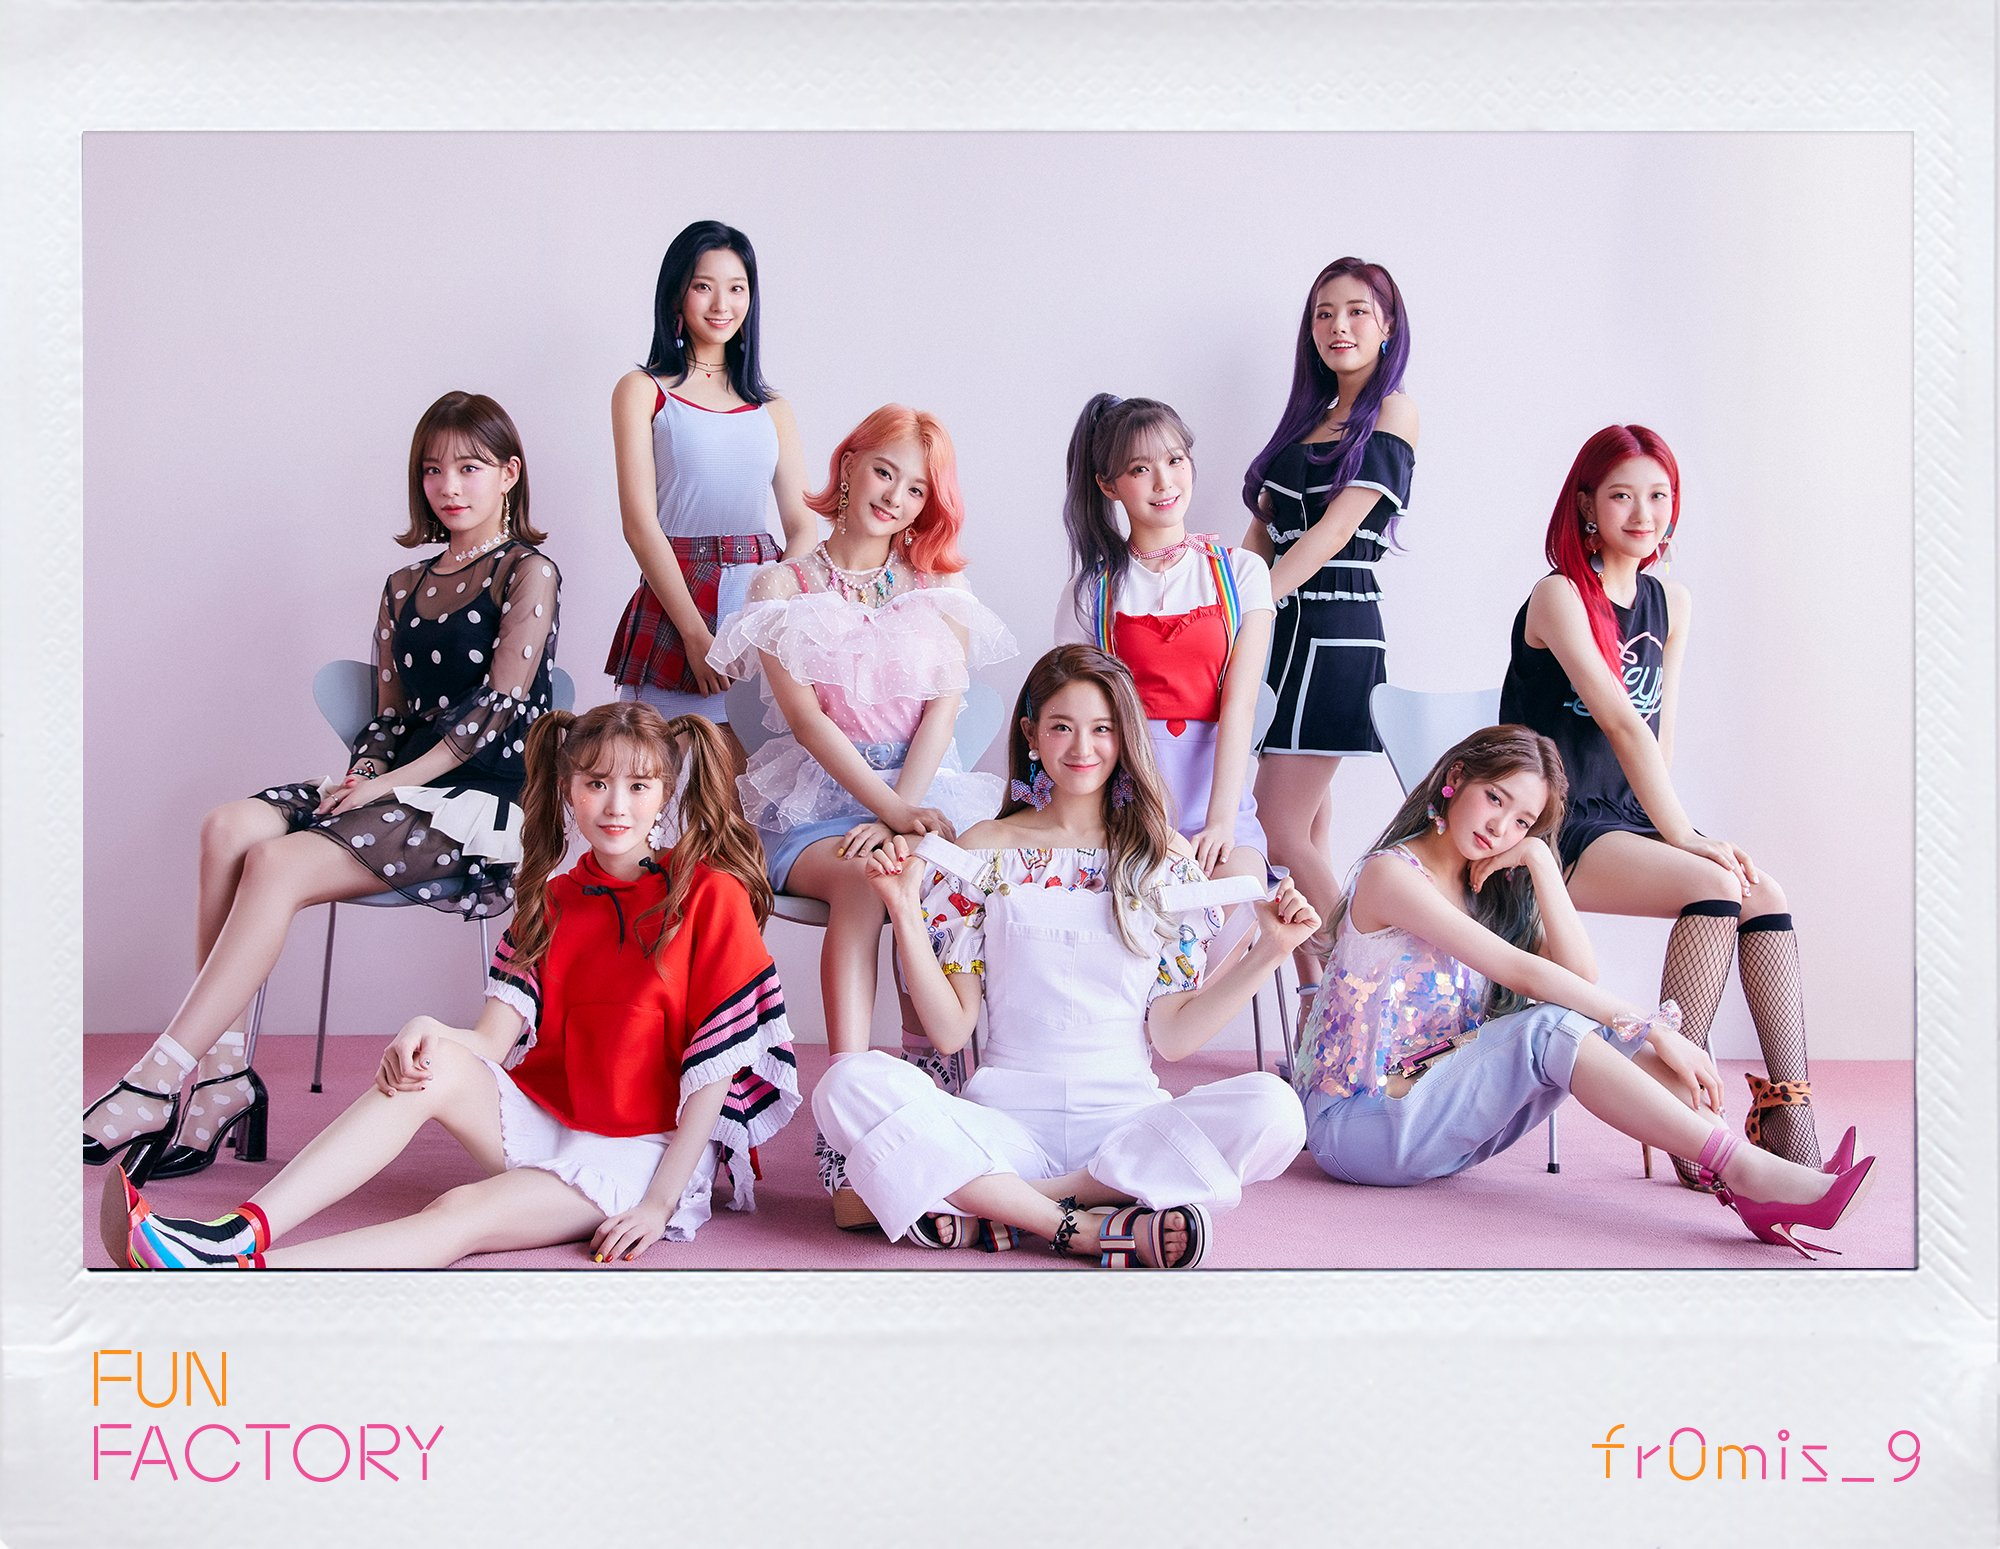 fromis9, fromis 9 profile, fromis 9 facts, fromis 9 age, fromis 9 height, fromis 9 leader, fromis 9 comeback, fromis 9 age, fromis 9 fun,